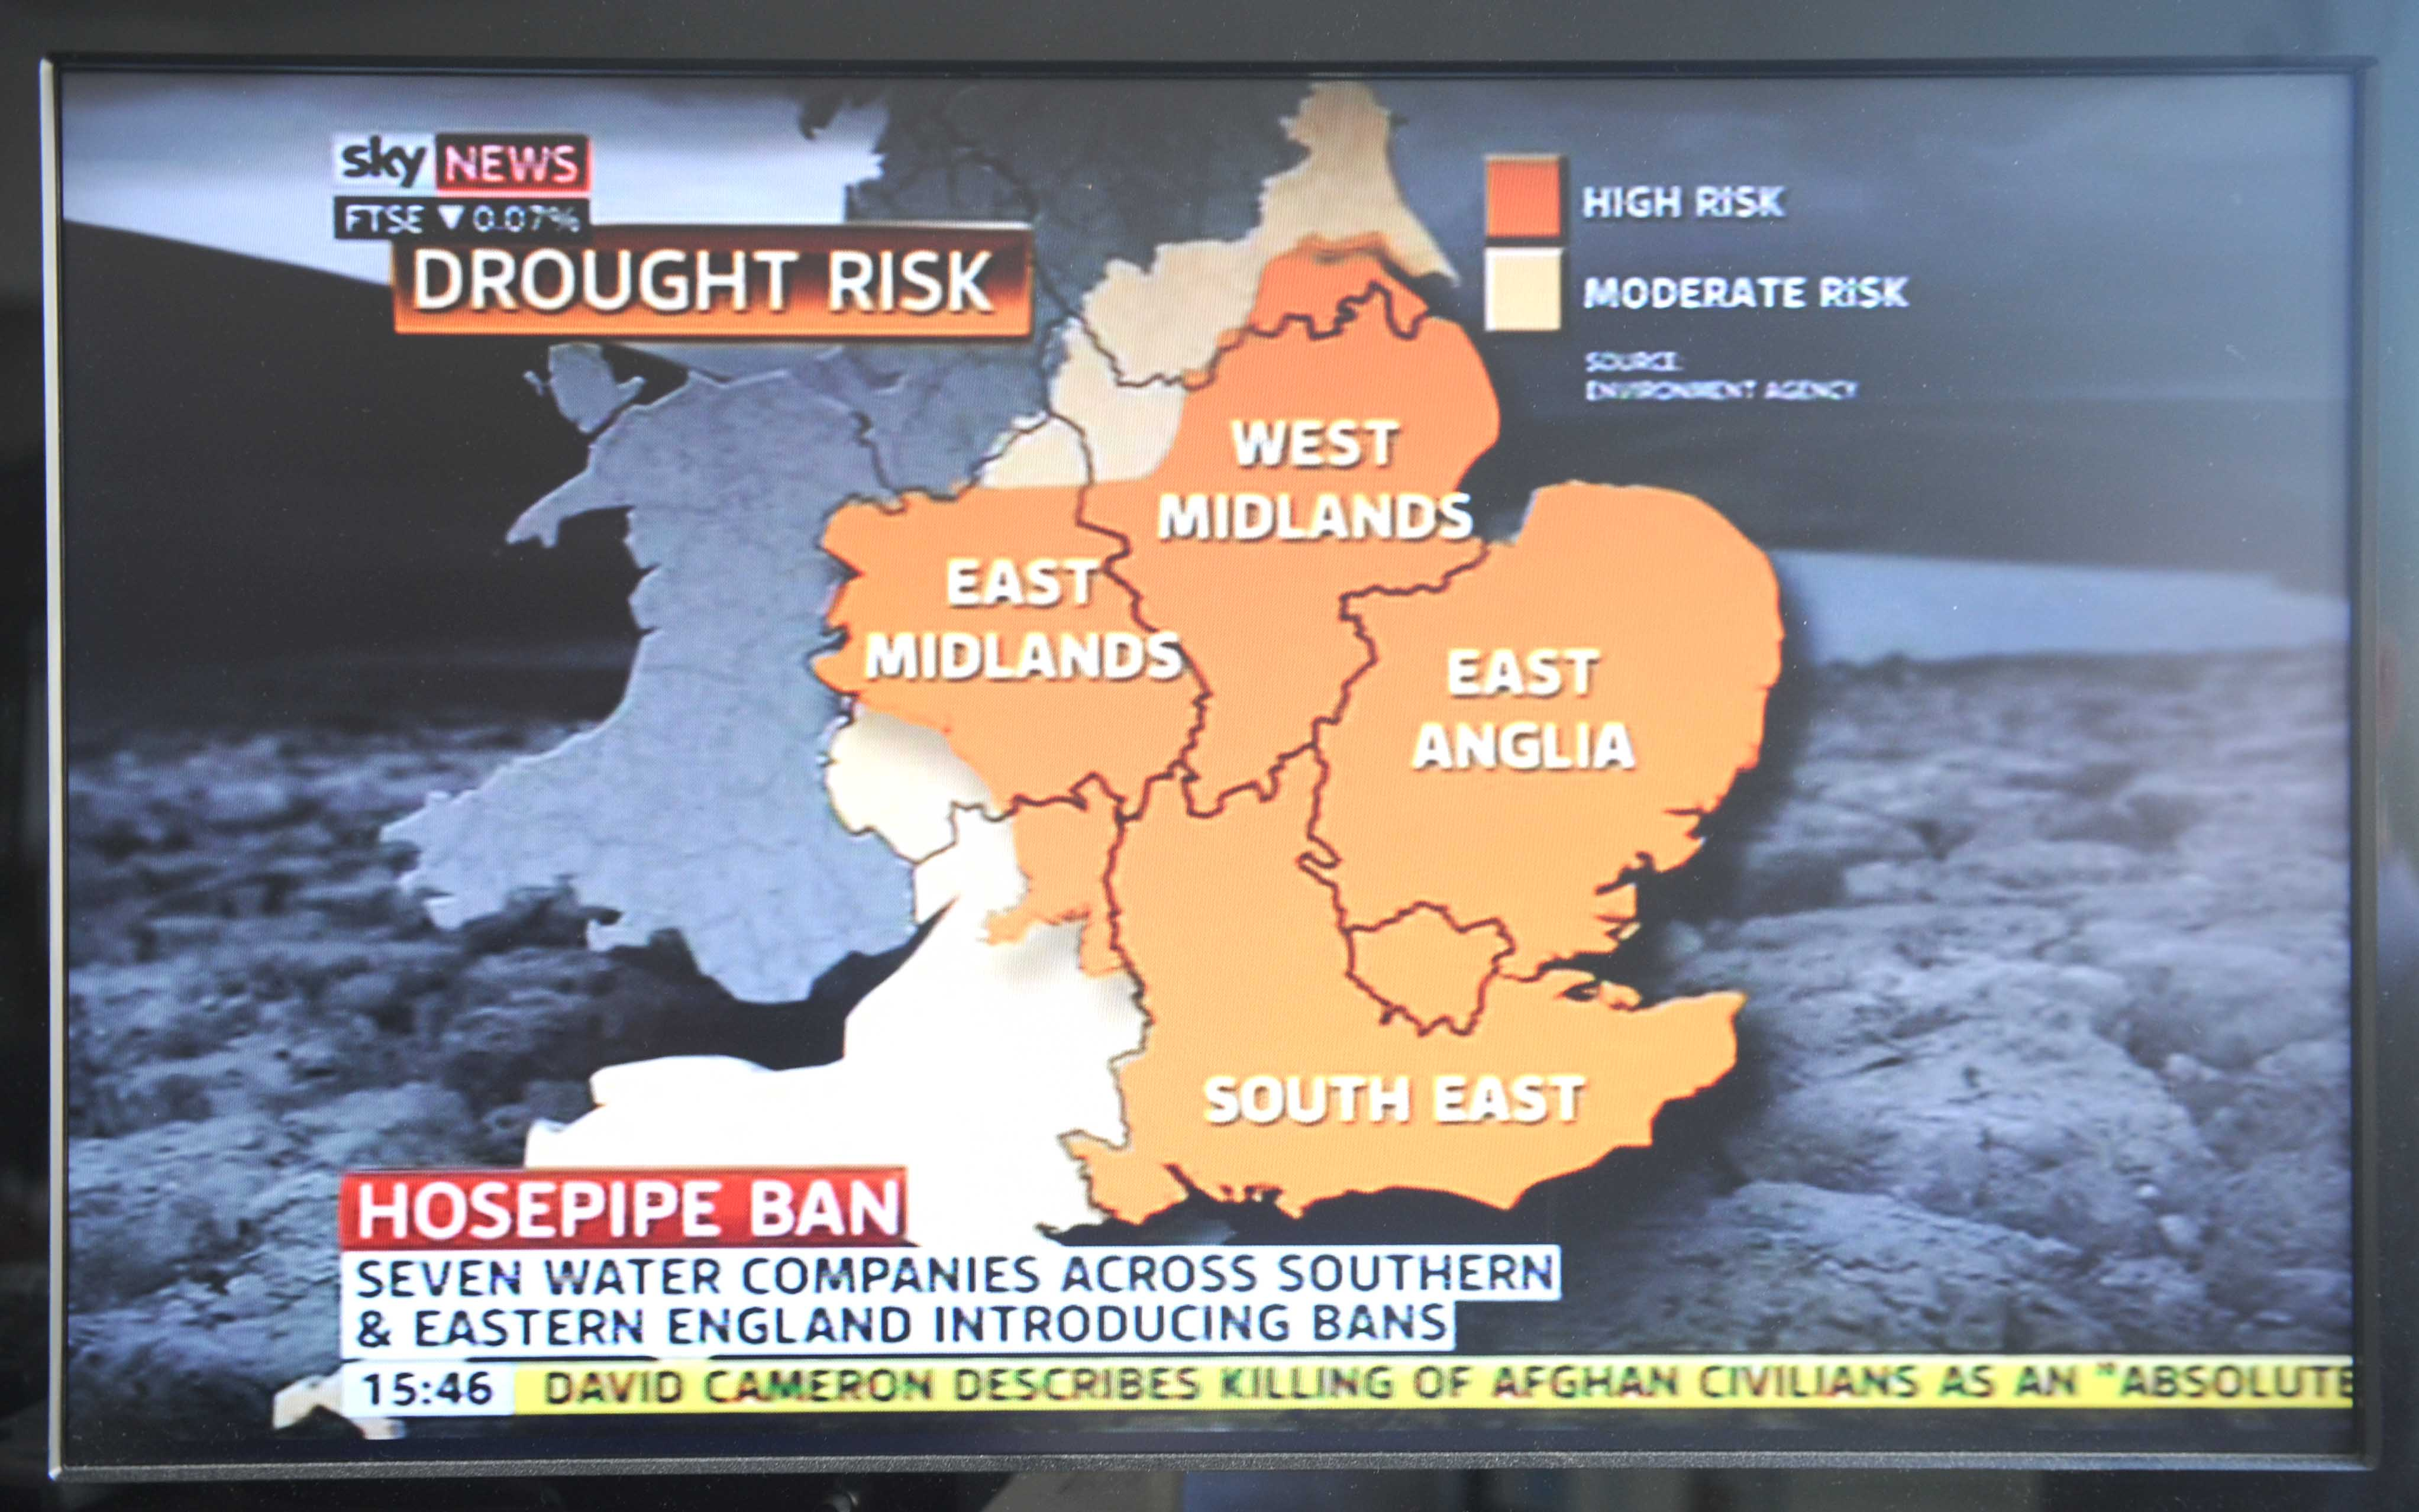 Sky News get their East and West Midlands mixed up